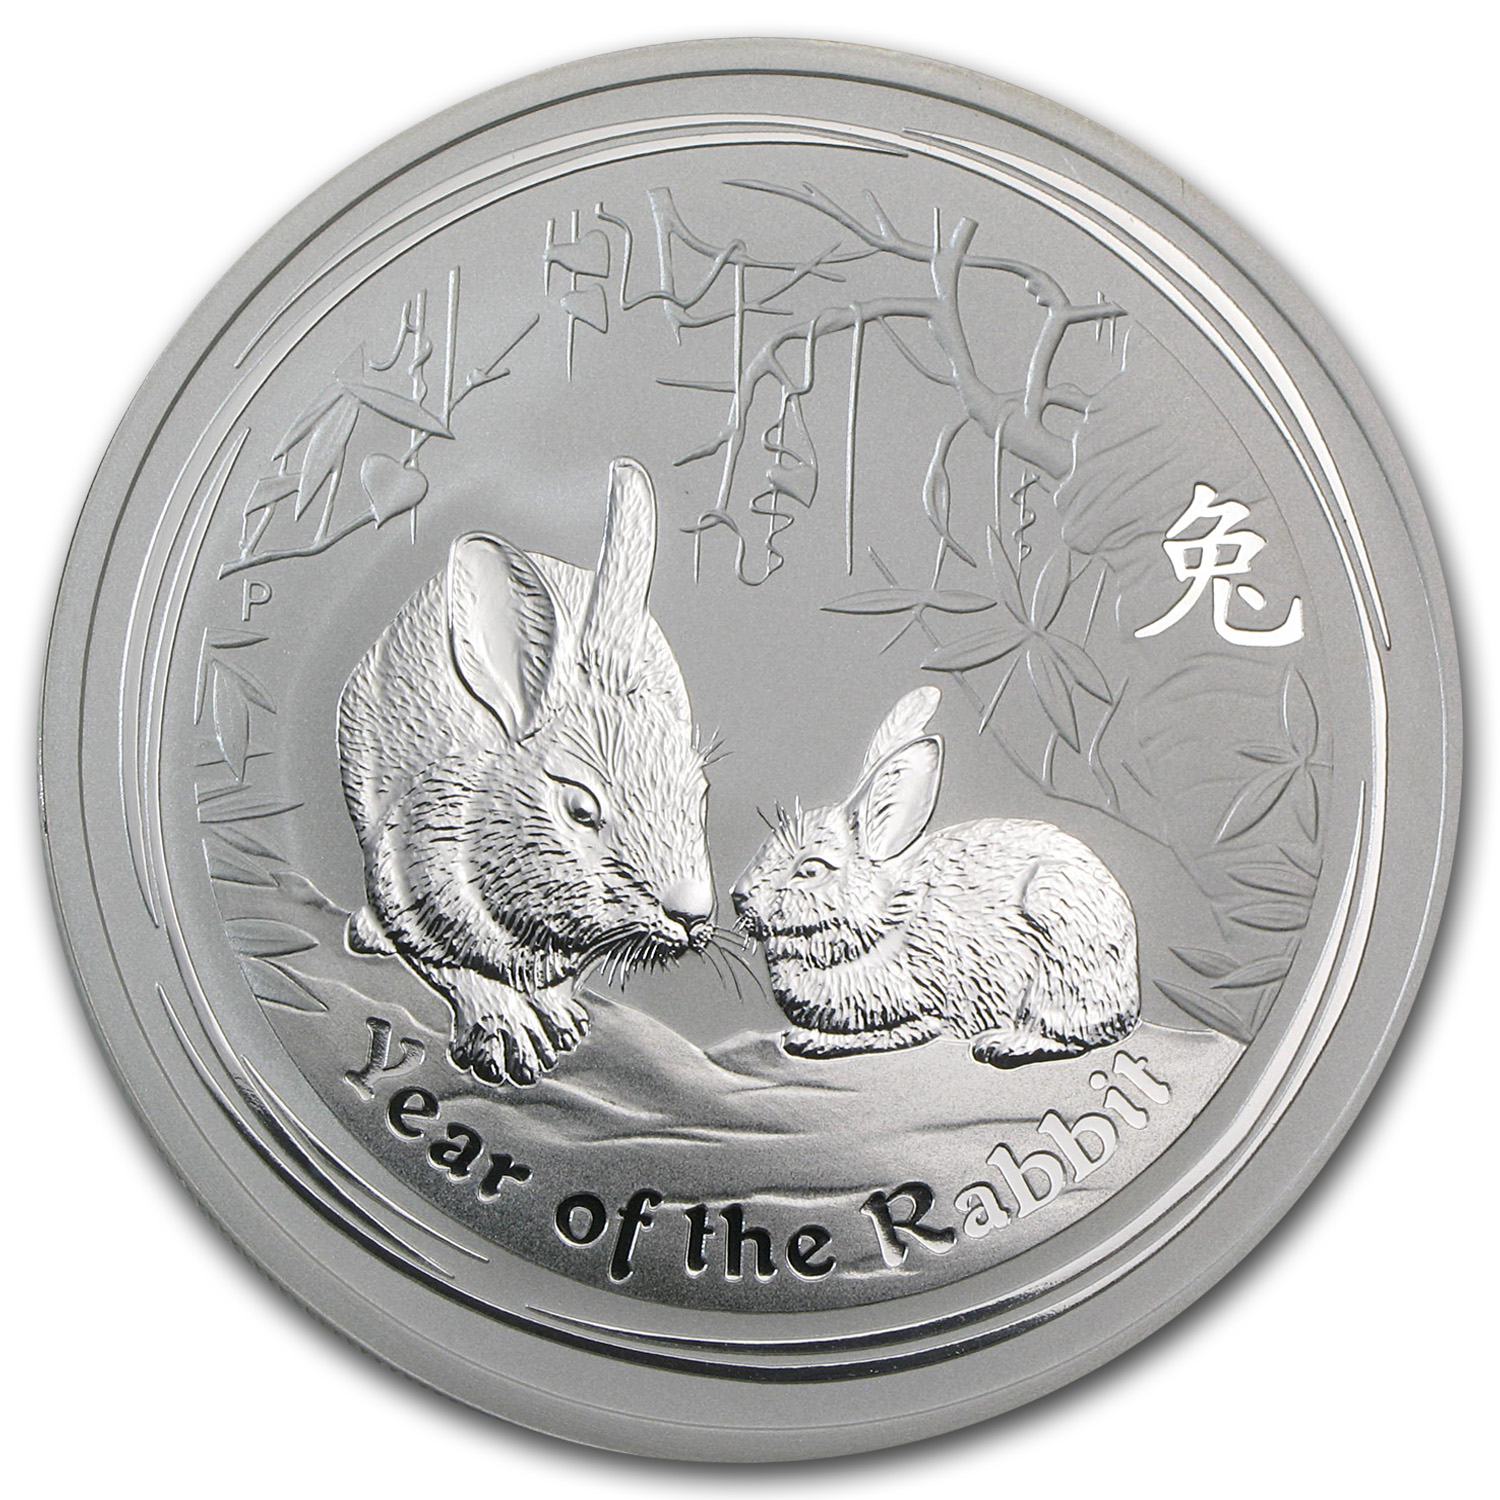 2011 Australia 2 oz Silver Year of the Rabbit BU